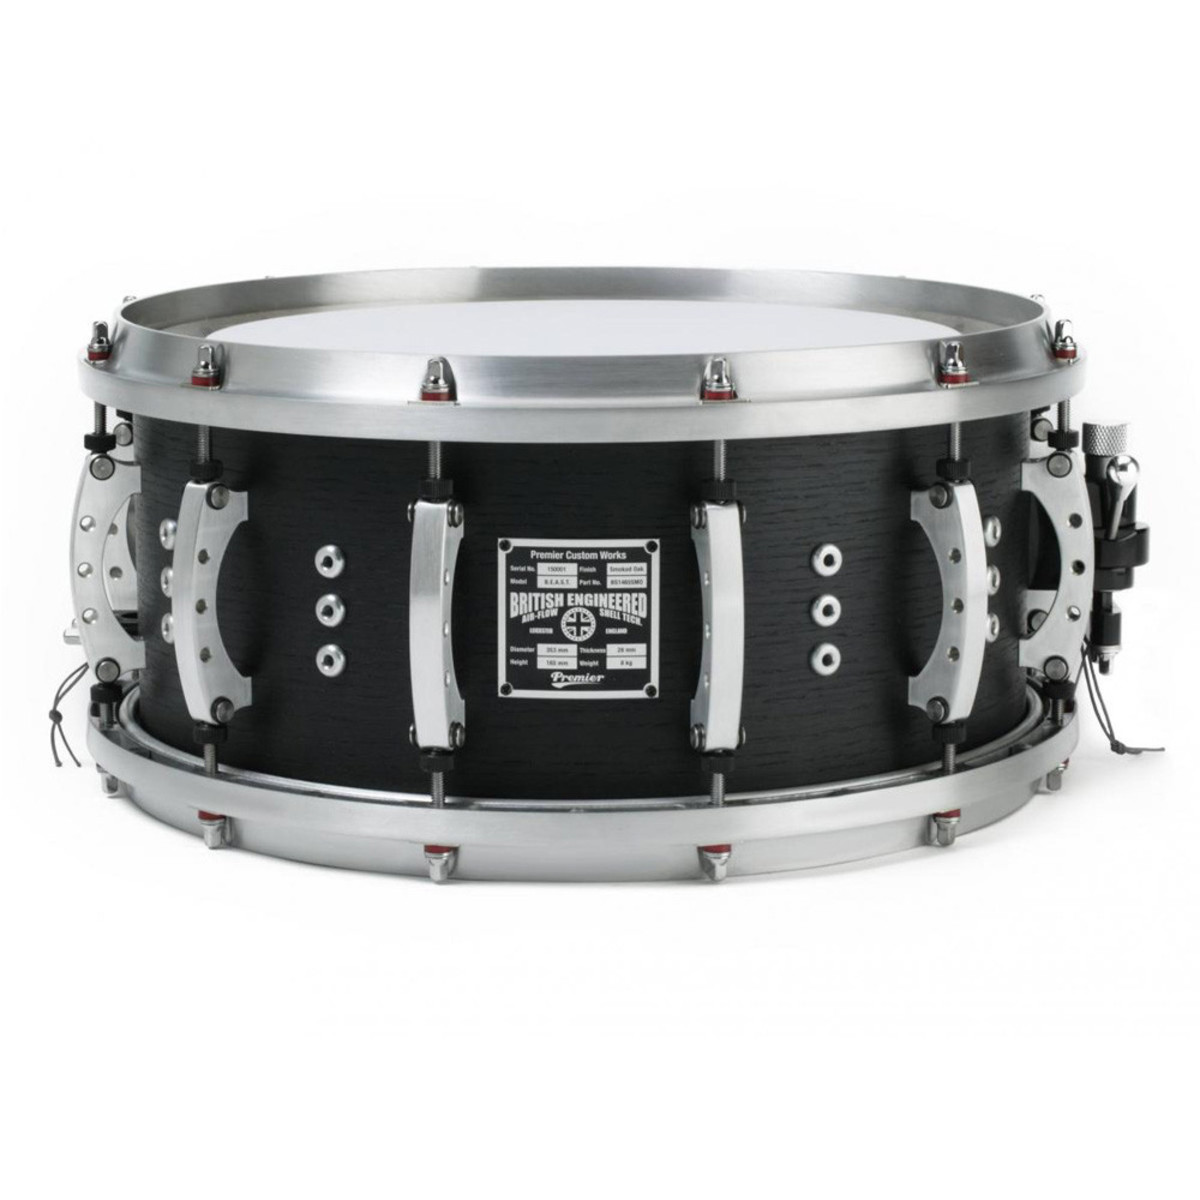 Premier \'The Beast\' Snare Drum with Air-Flow Shell Technology bei ...